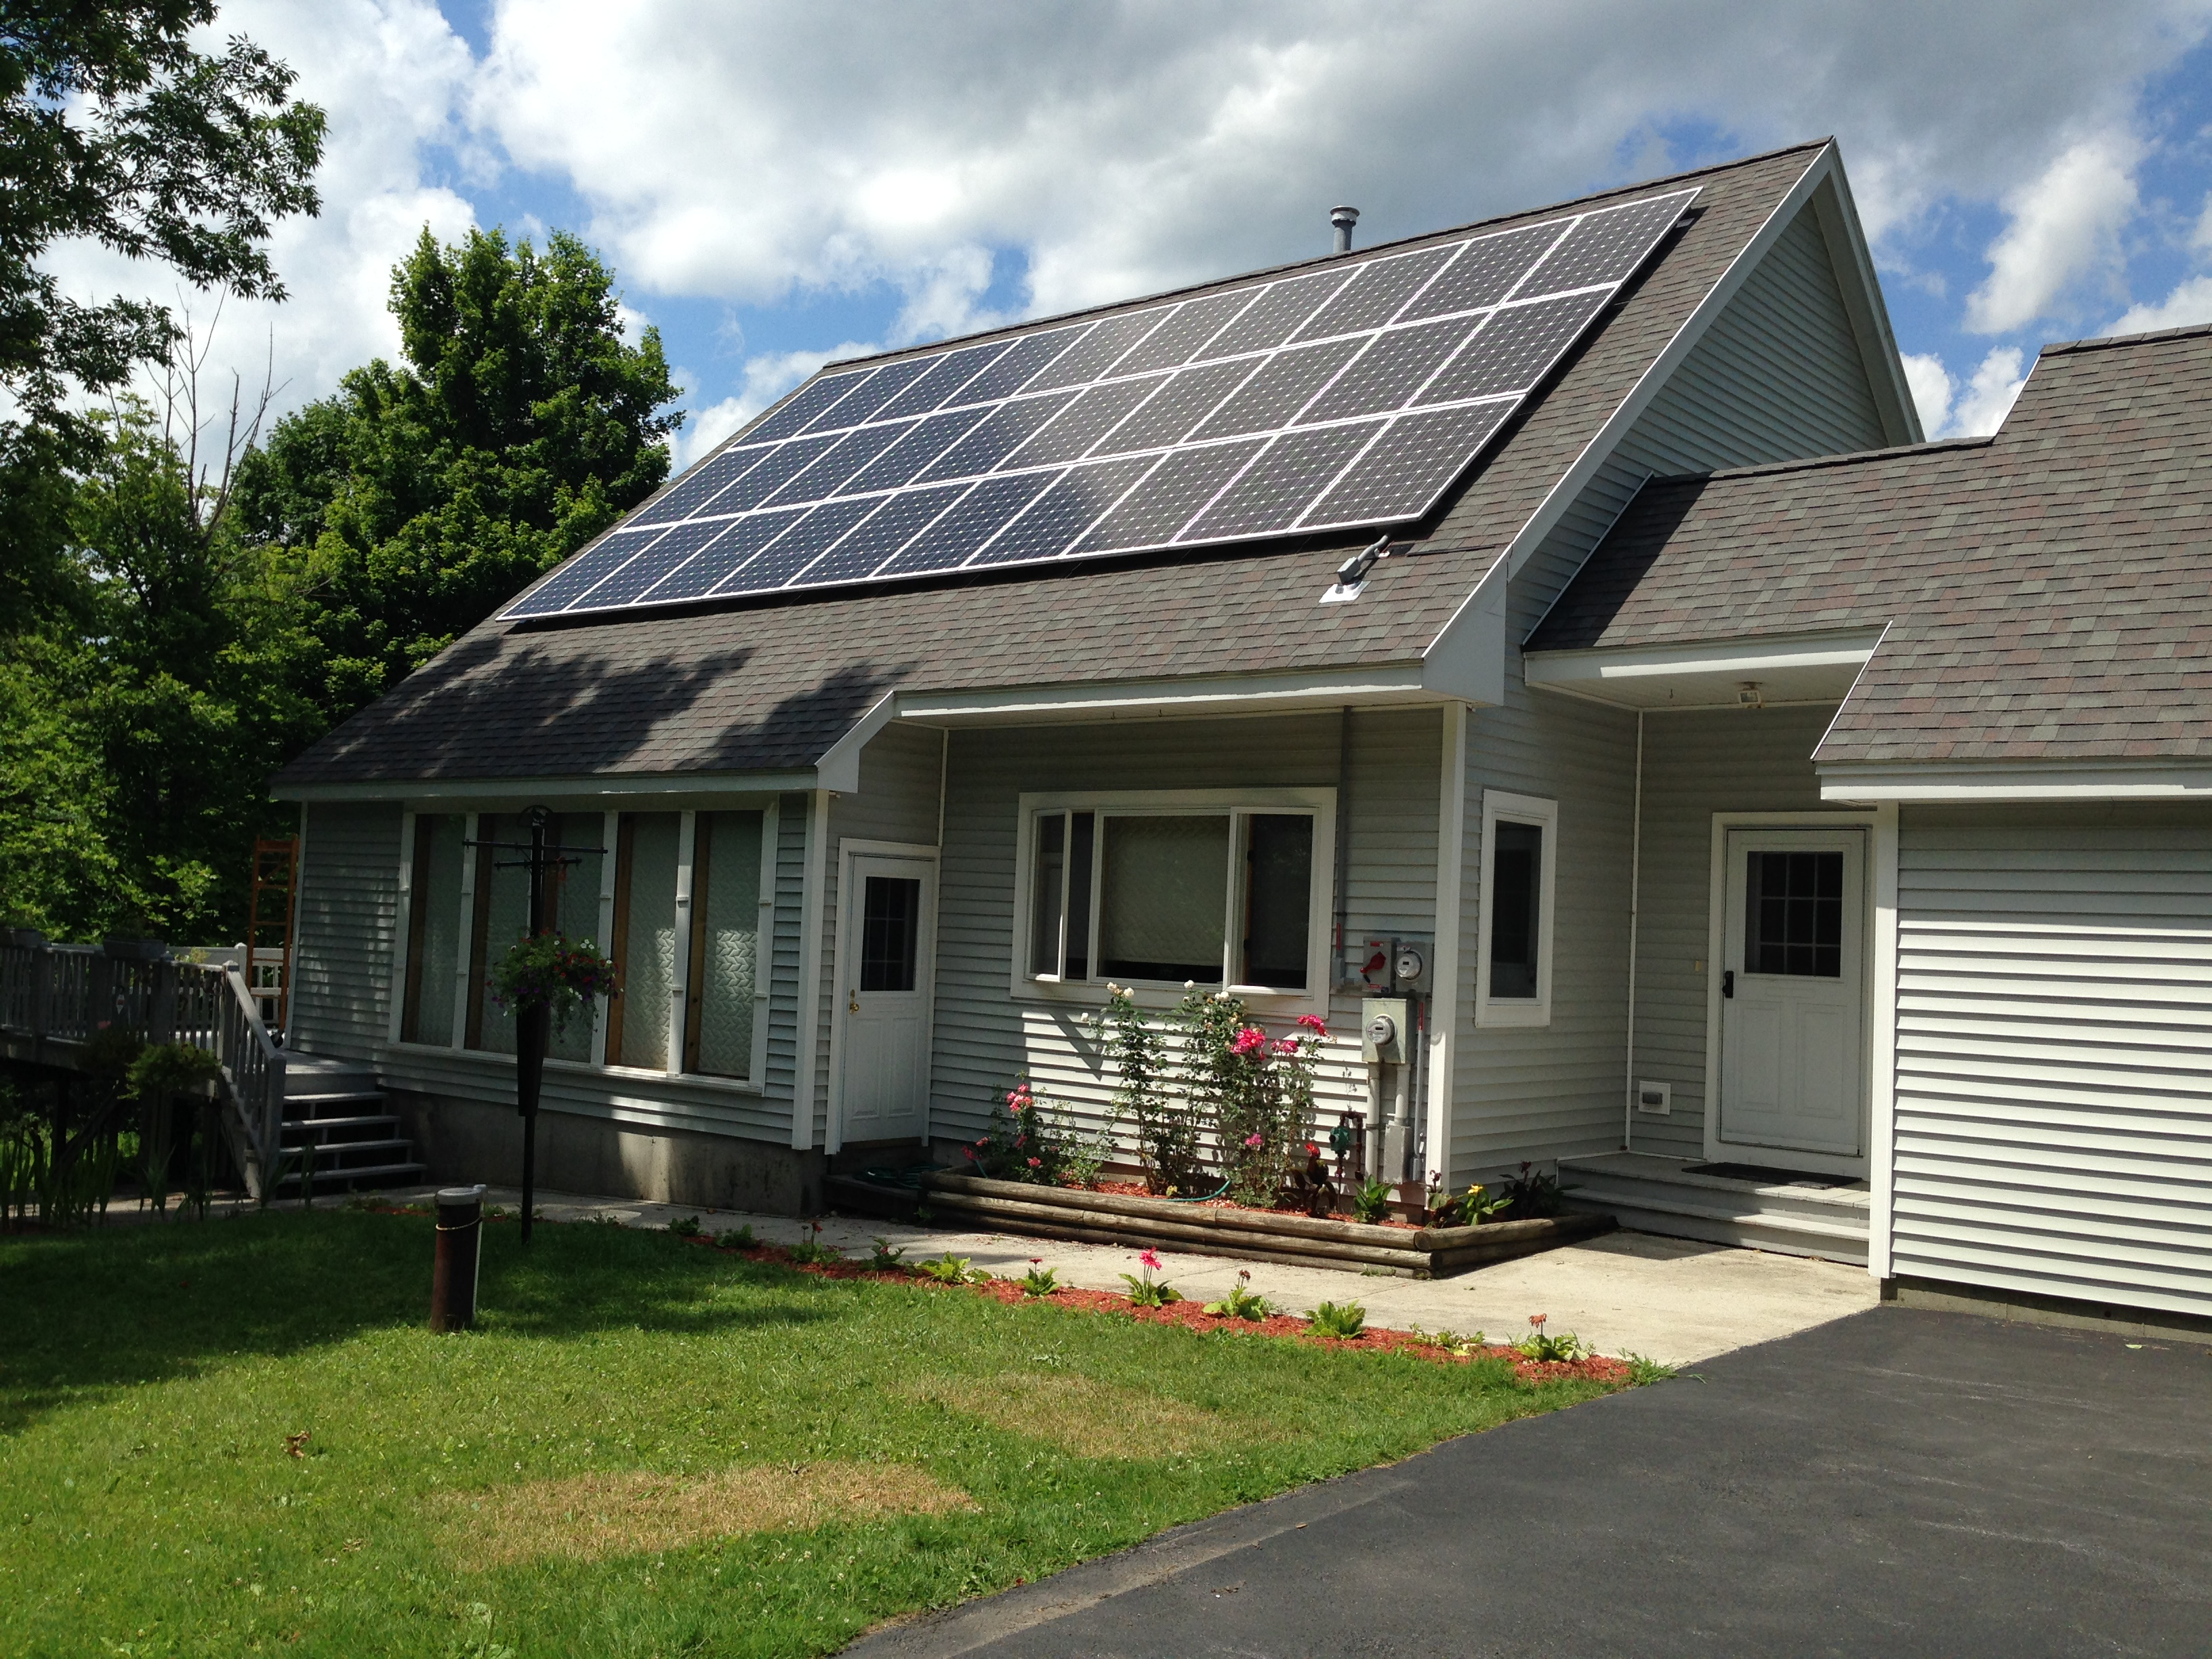 Rooftop solar array in Bennington Vermont